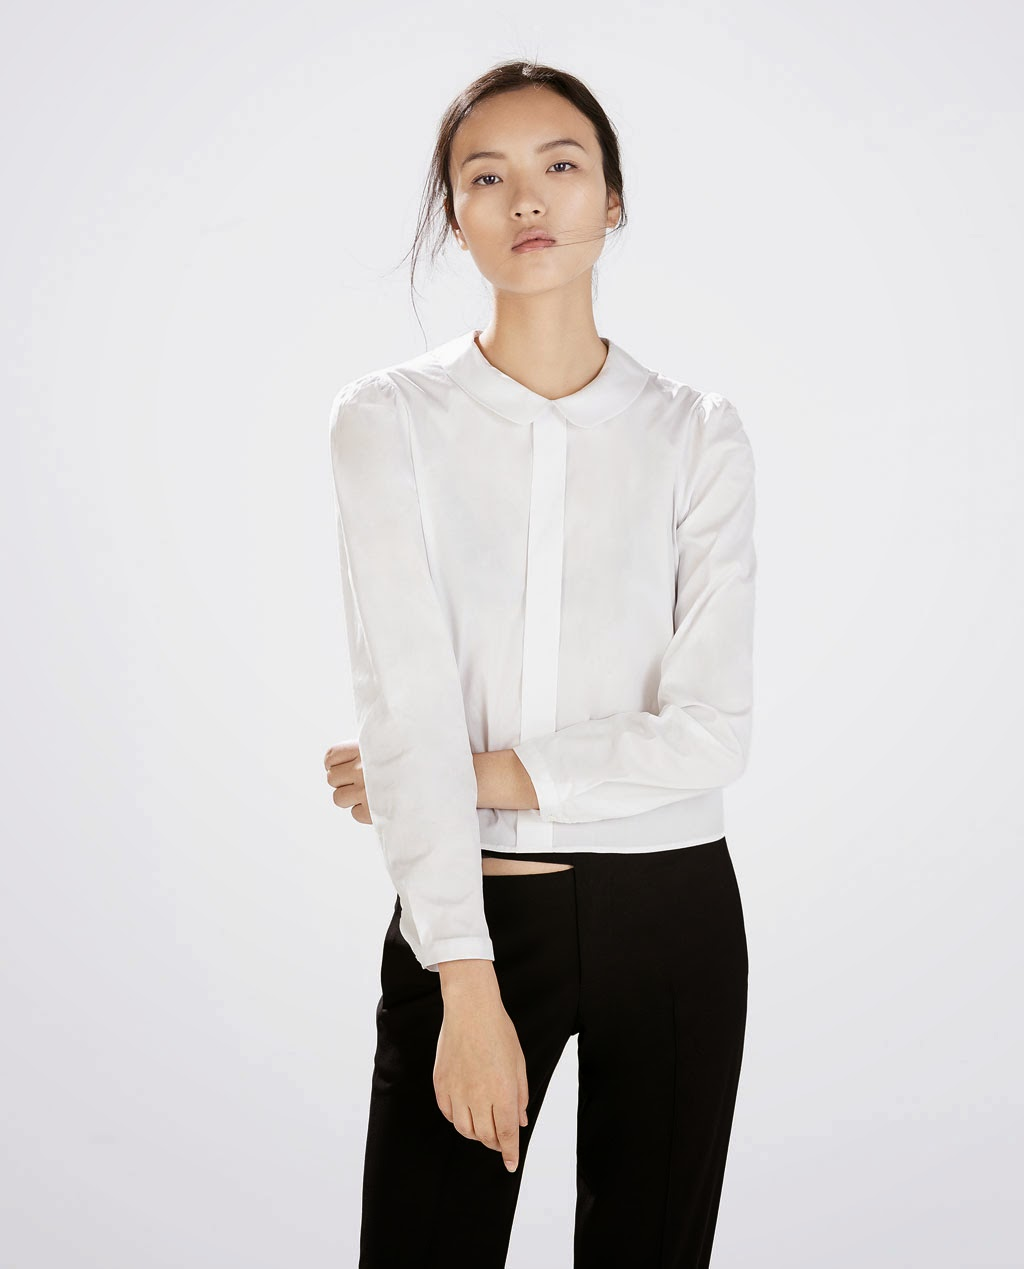 http://www.zara.com/us/en/woman/outerwear/blouse-with-peter-pan-collar-c269183p2314039.html